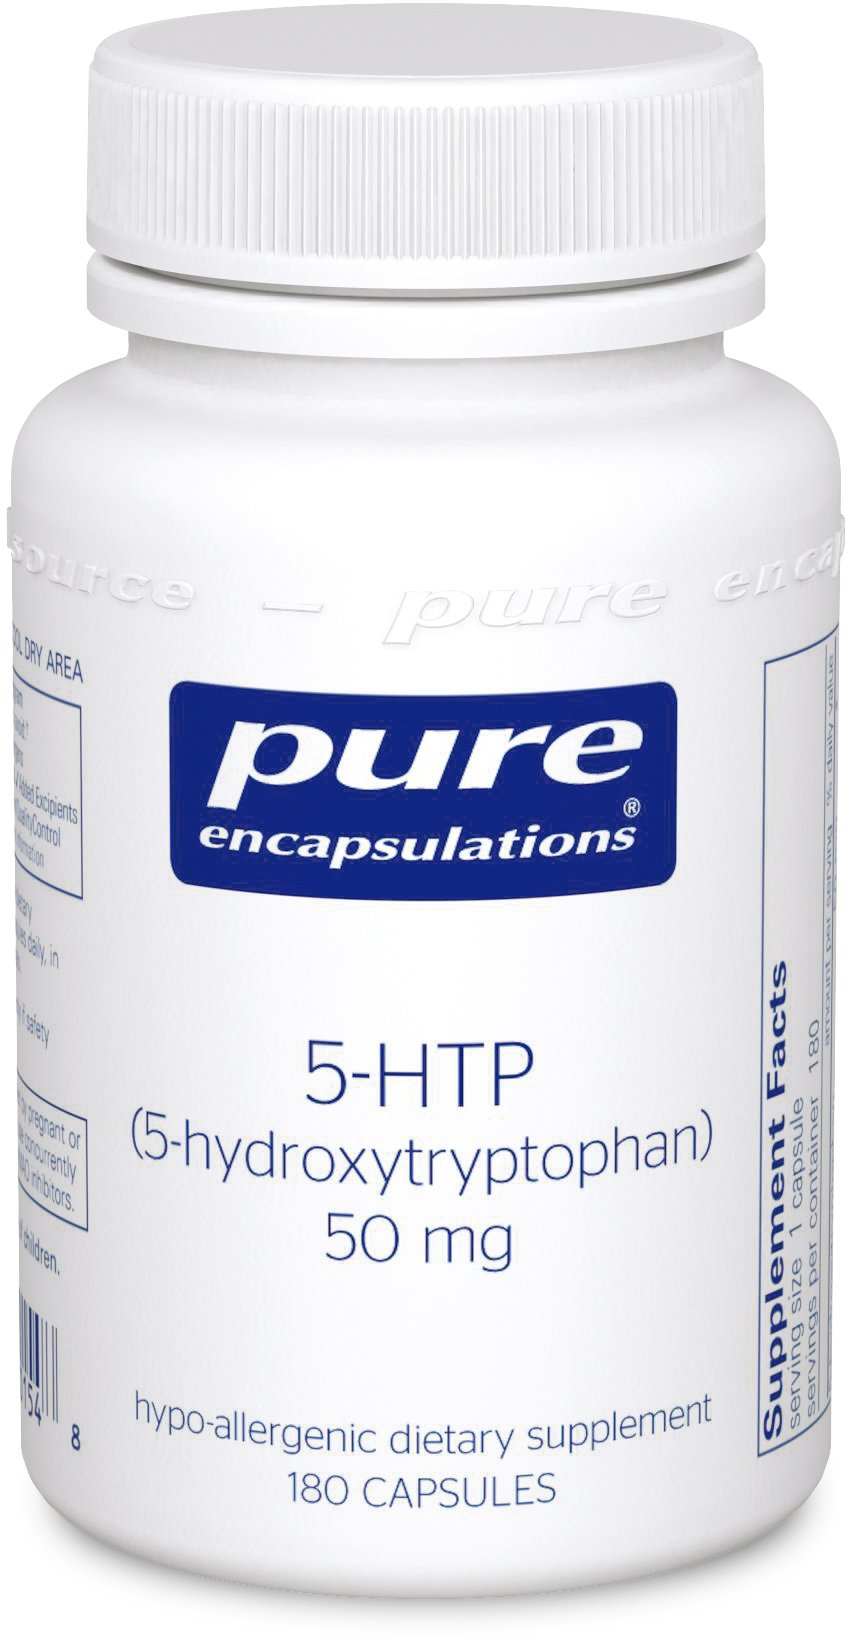 Pure Encapsulations - 5-HTP (5-Hydroxytryptophan) 50 mg - Hypoallergenic Dietary Supplement to Promote Serotonin Synthesis* - 180 Capsules